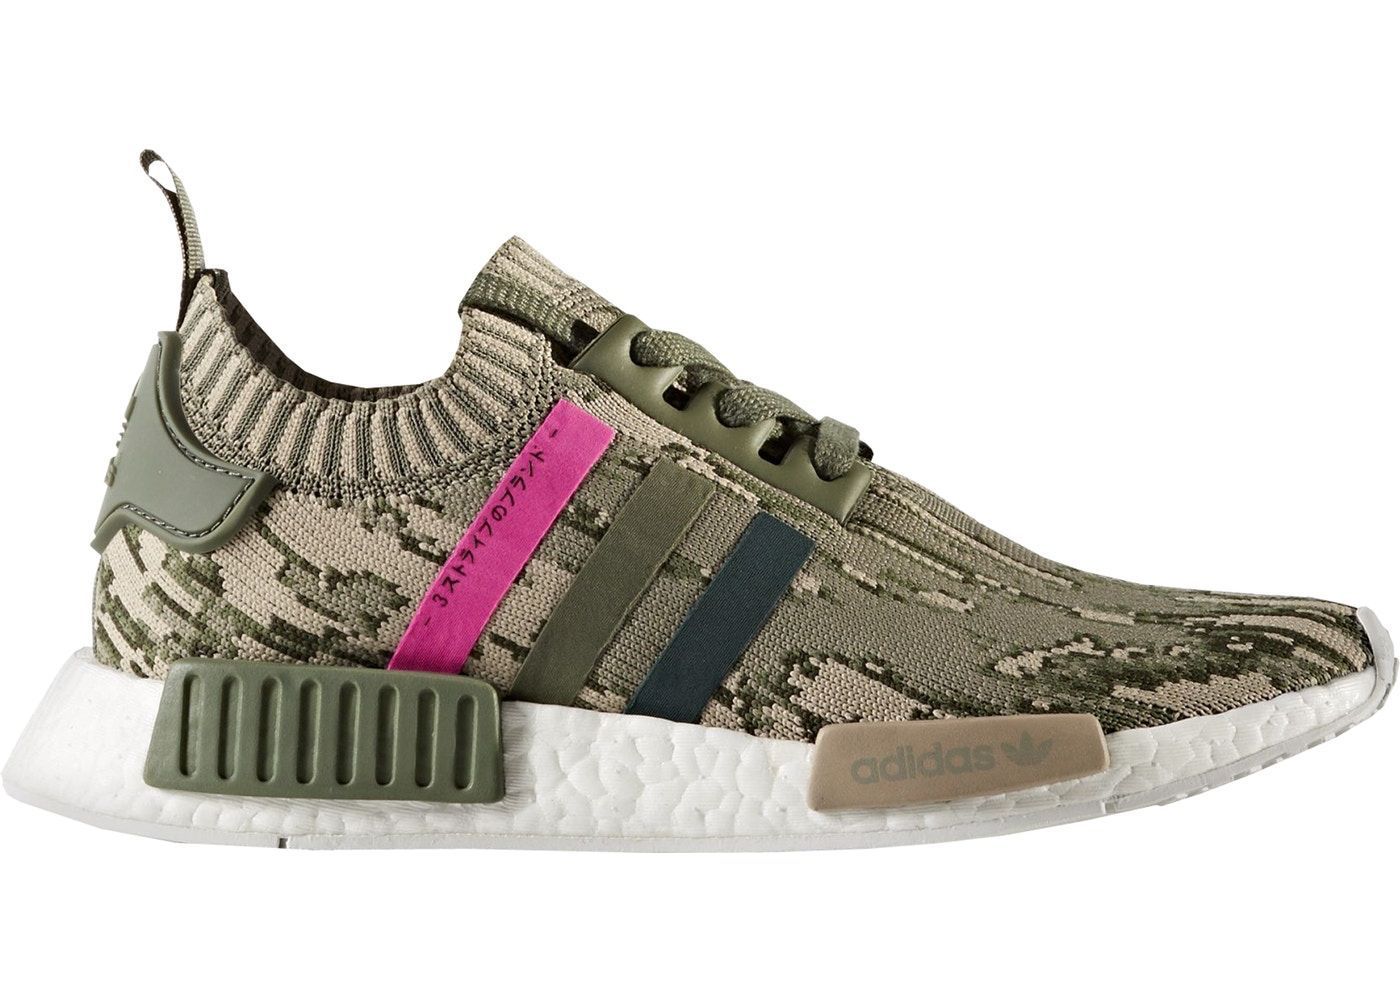 a3068be3 Check out the adidas NMD R1 Glitch Camo St Major (W) available on StockX